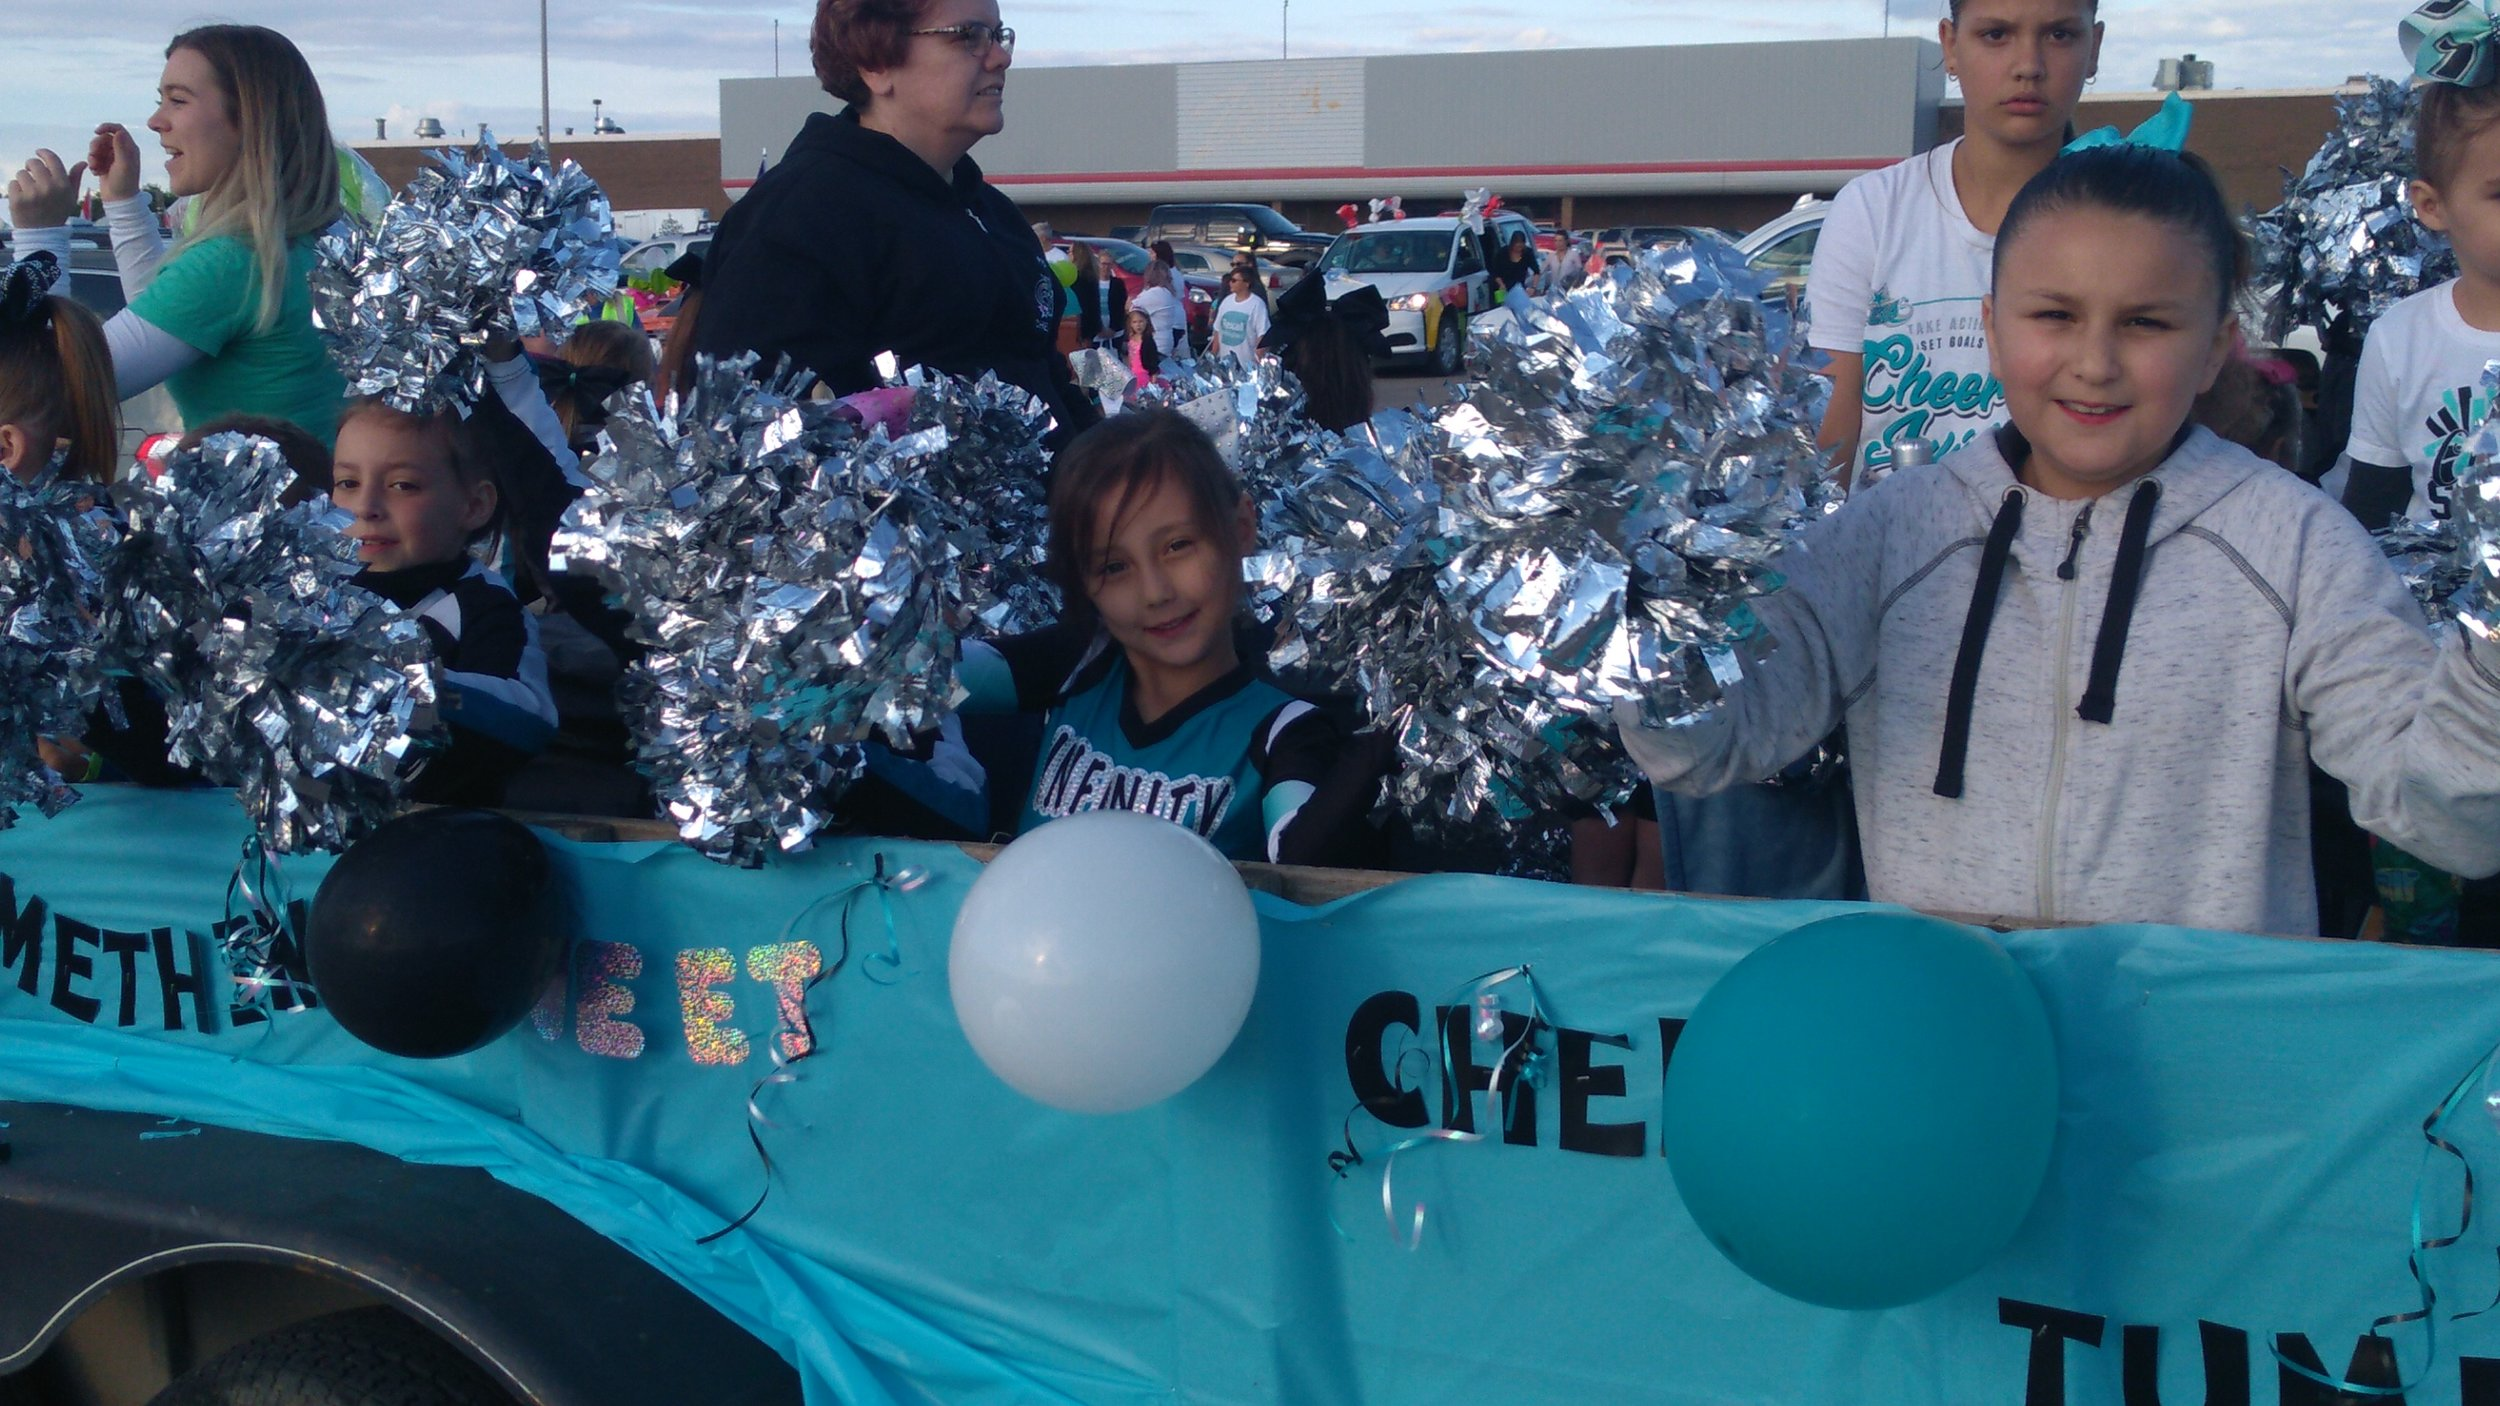 Children Figured Prominently On Many Floats